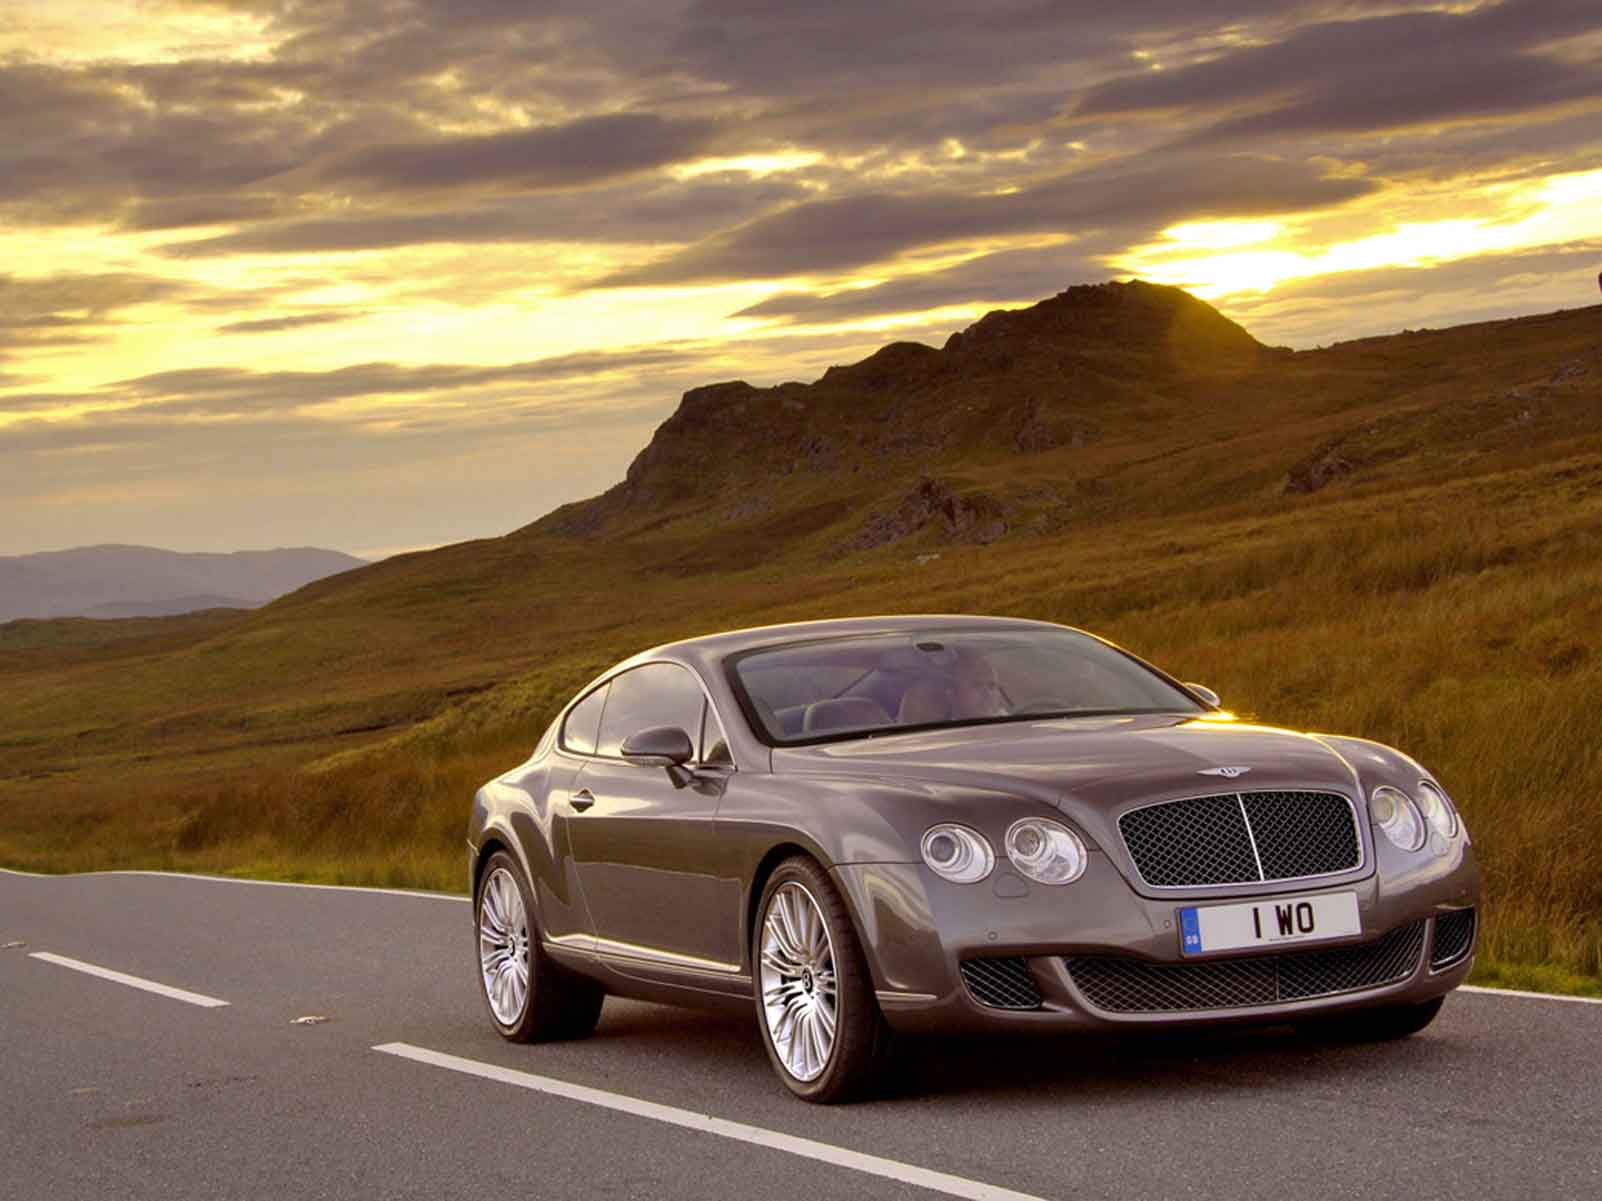 2009 Bentley Continental Gt Speed #10